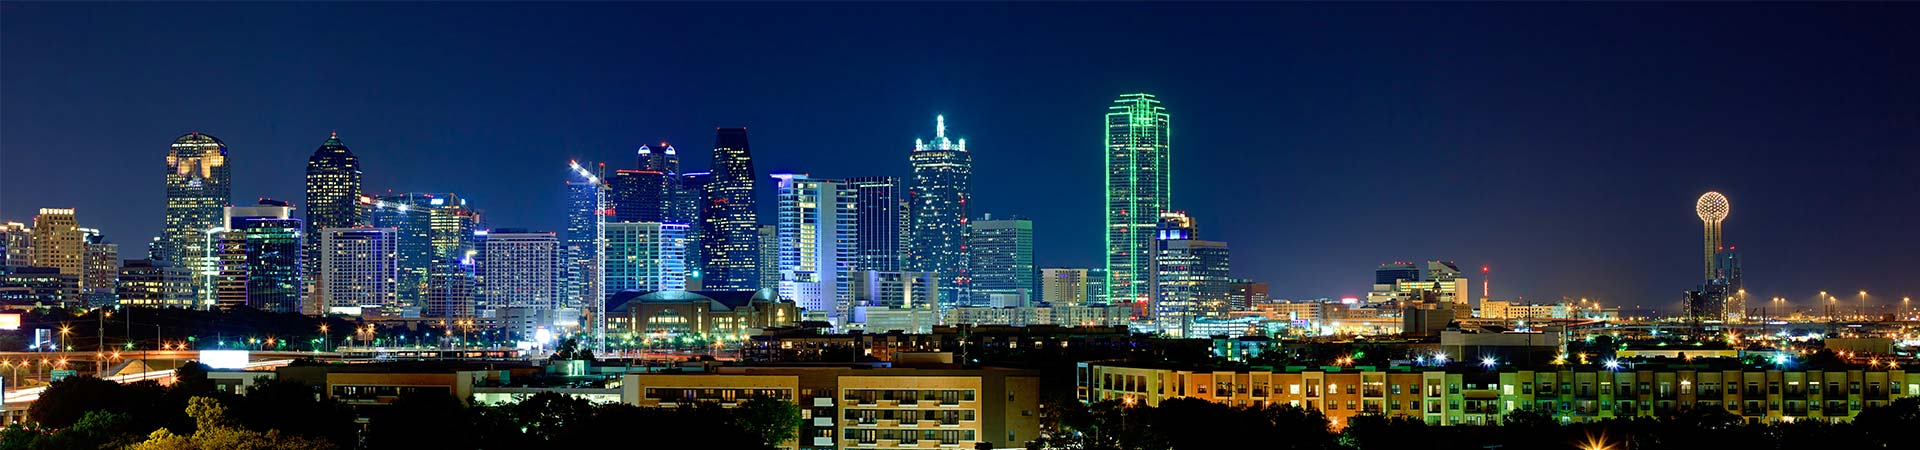 dallas-header